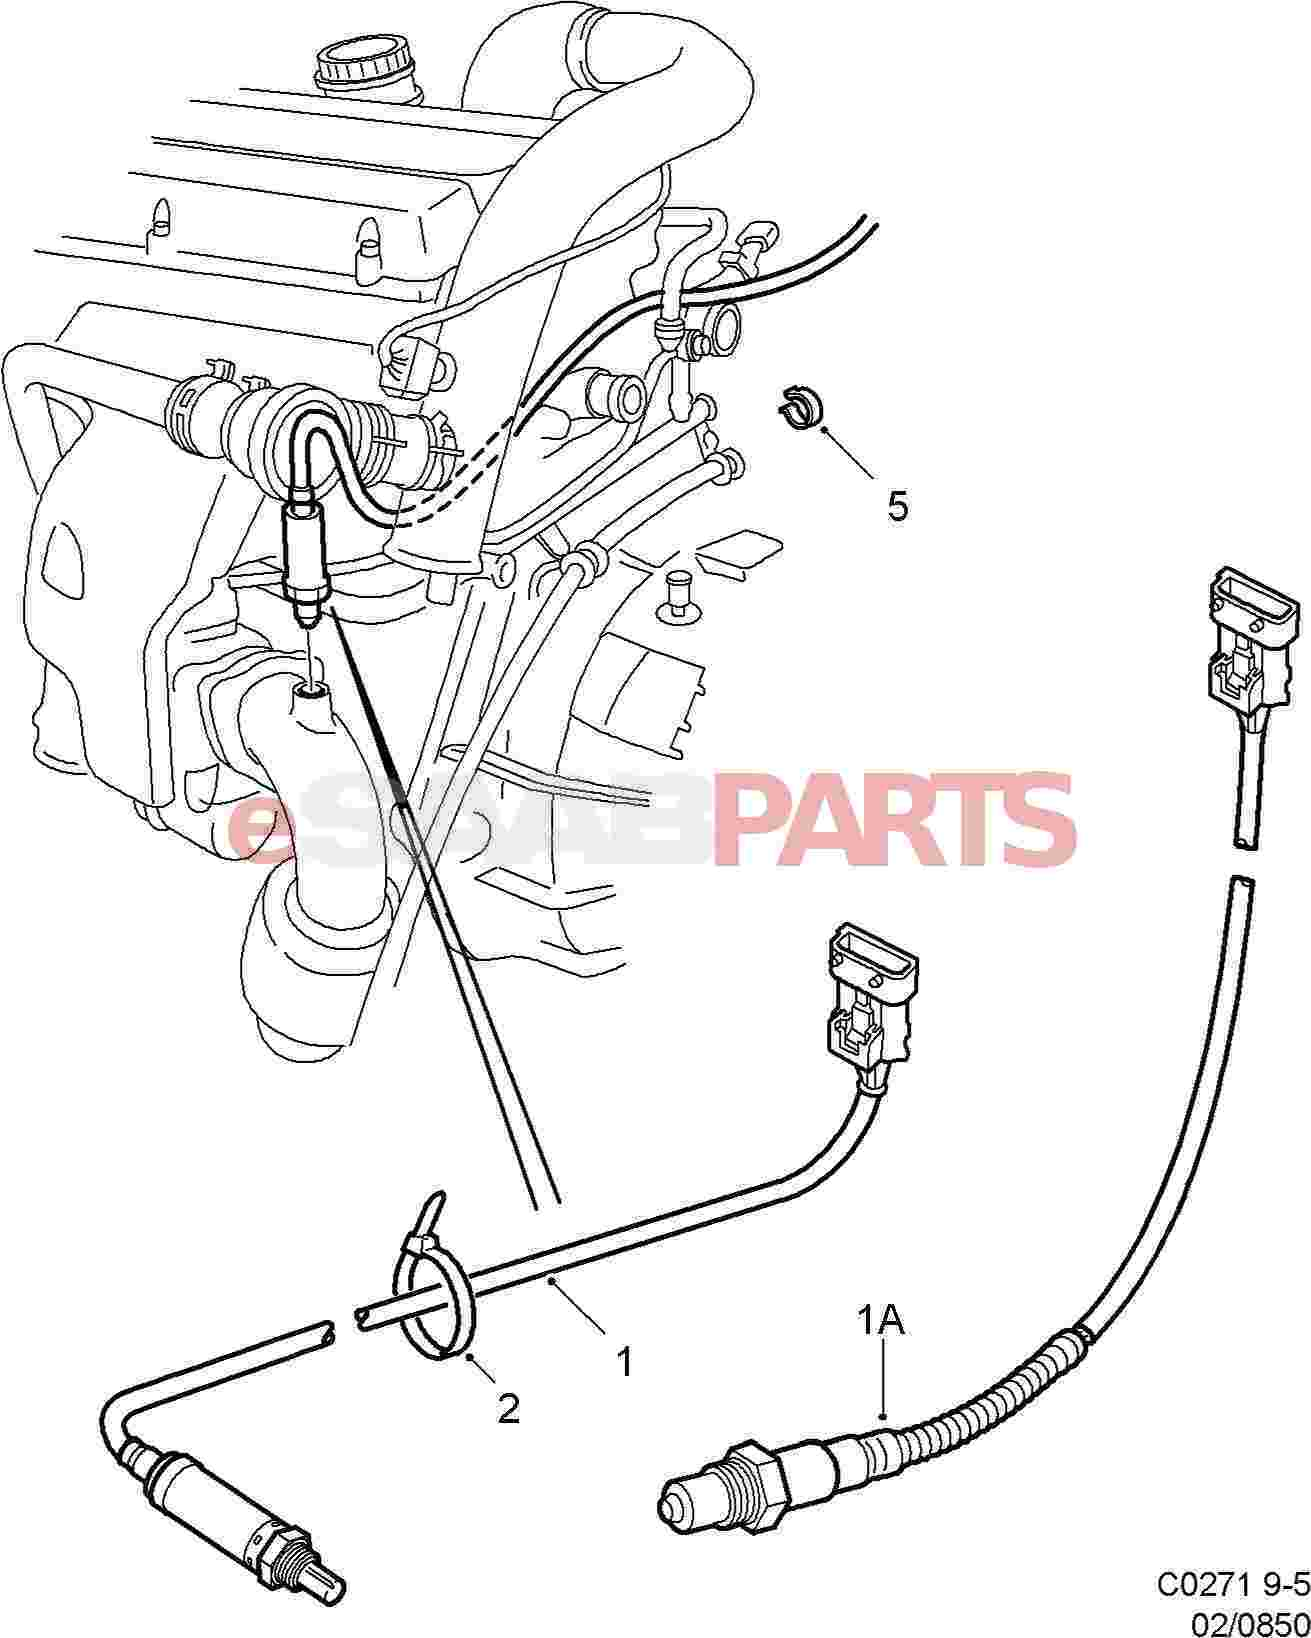 Px Kdf Redukce further  additionally Usage Fc as well S L additionally Ccrp Z Bop Inch Bolt. on rear drive drivetrain diagram